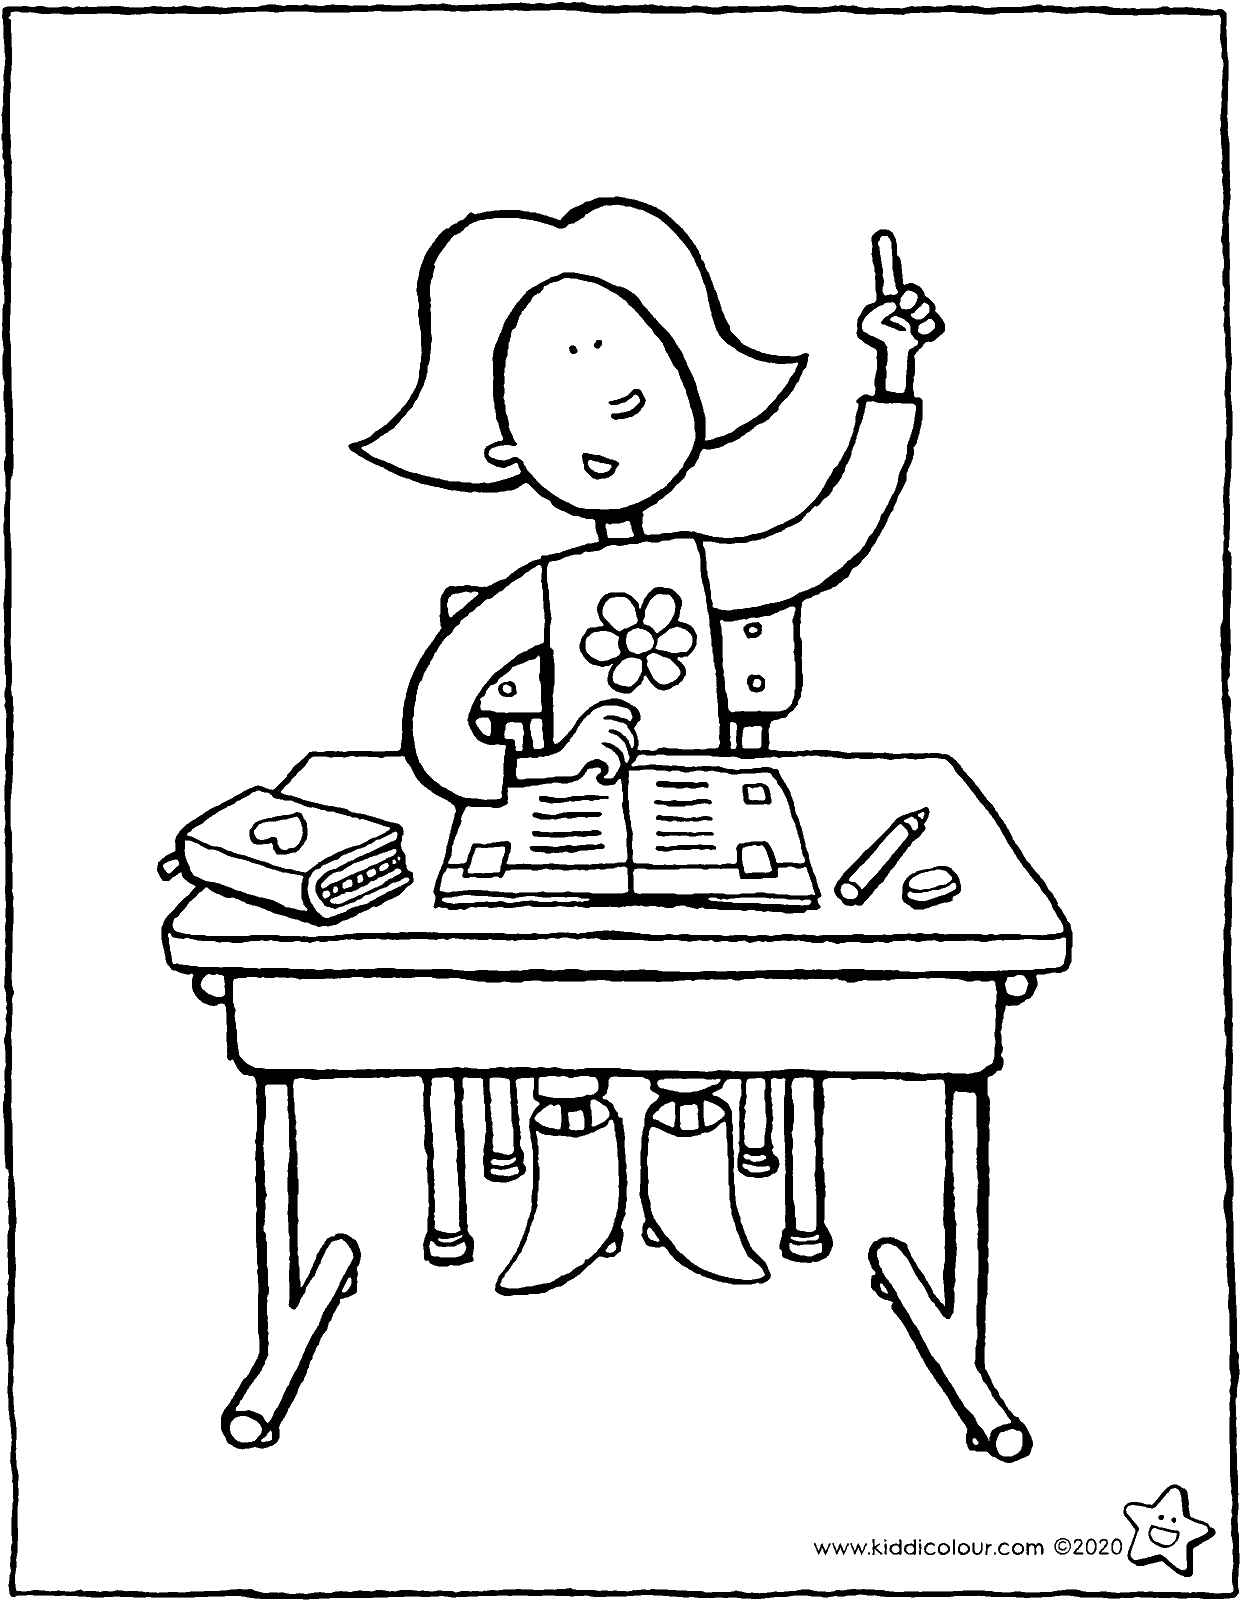 Emma at her school desk colouring page drawing picture 01V